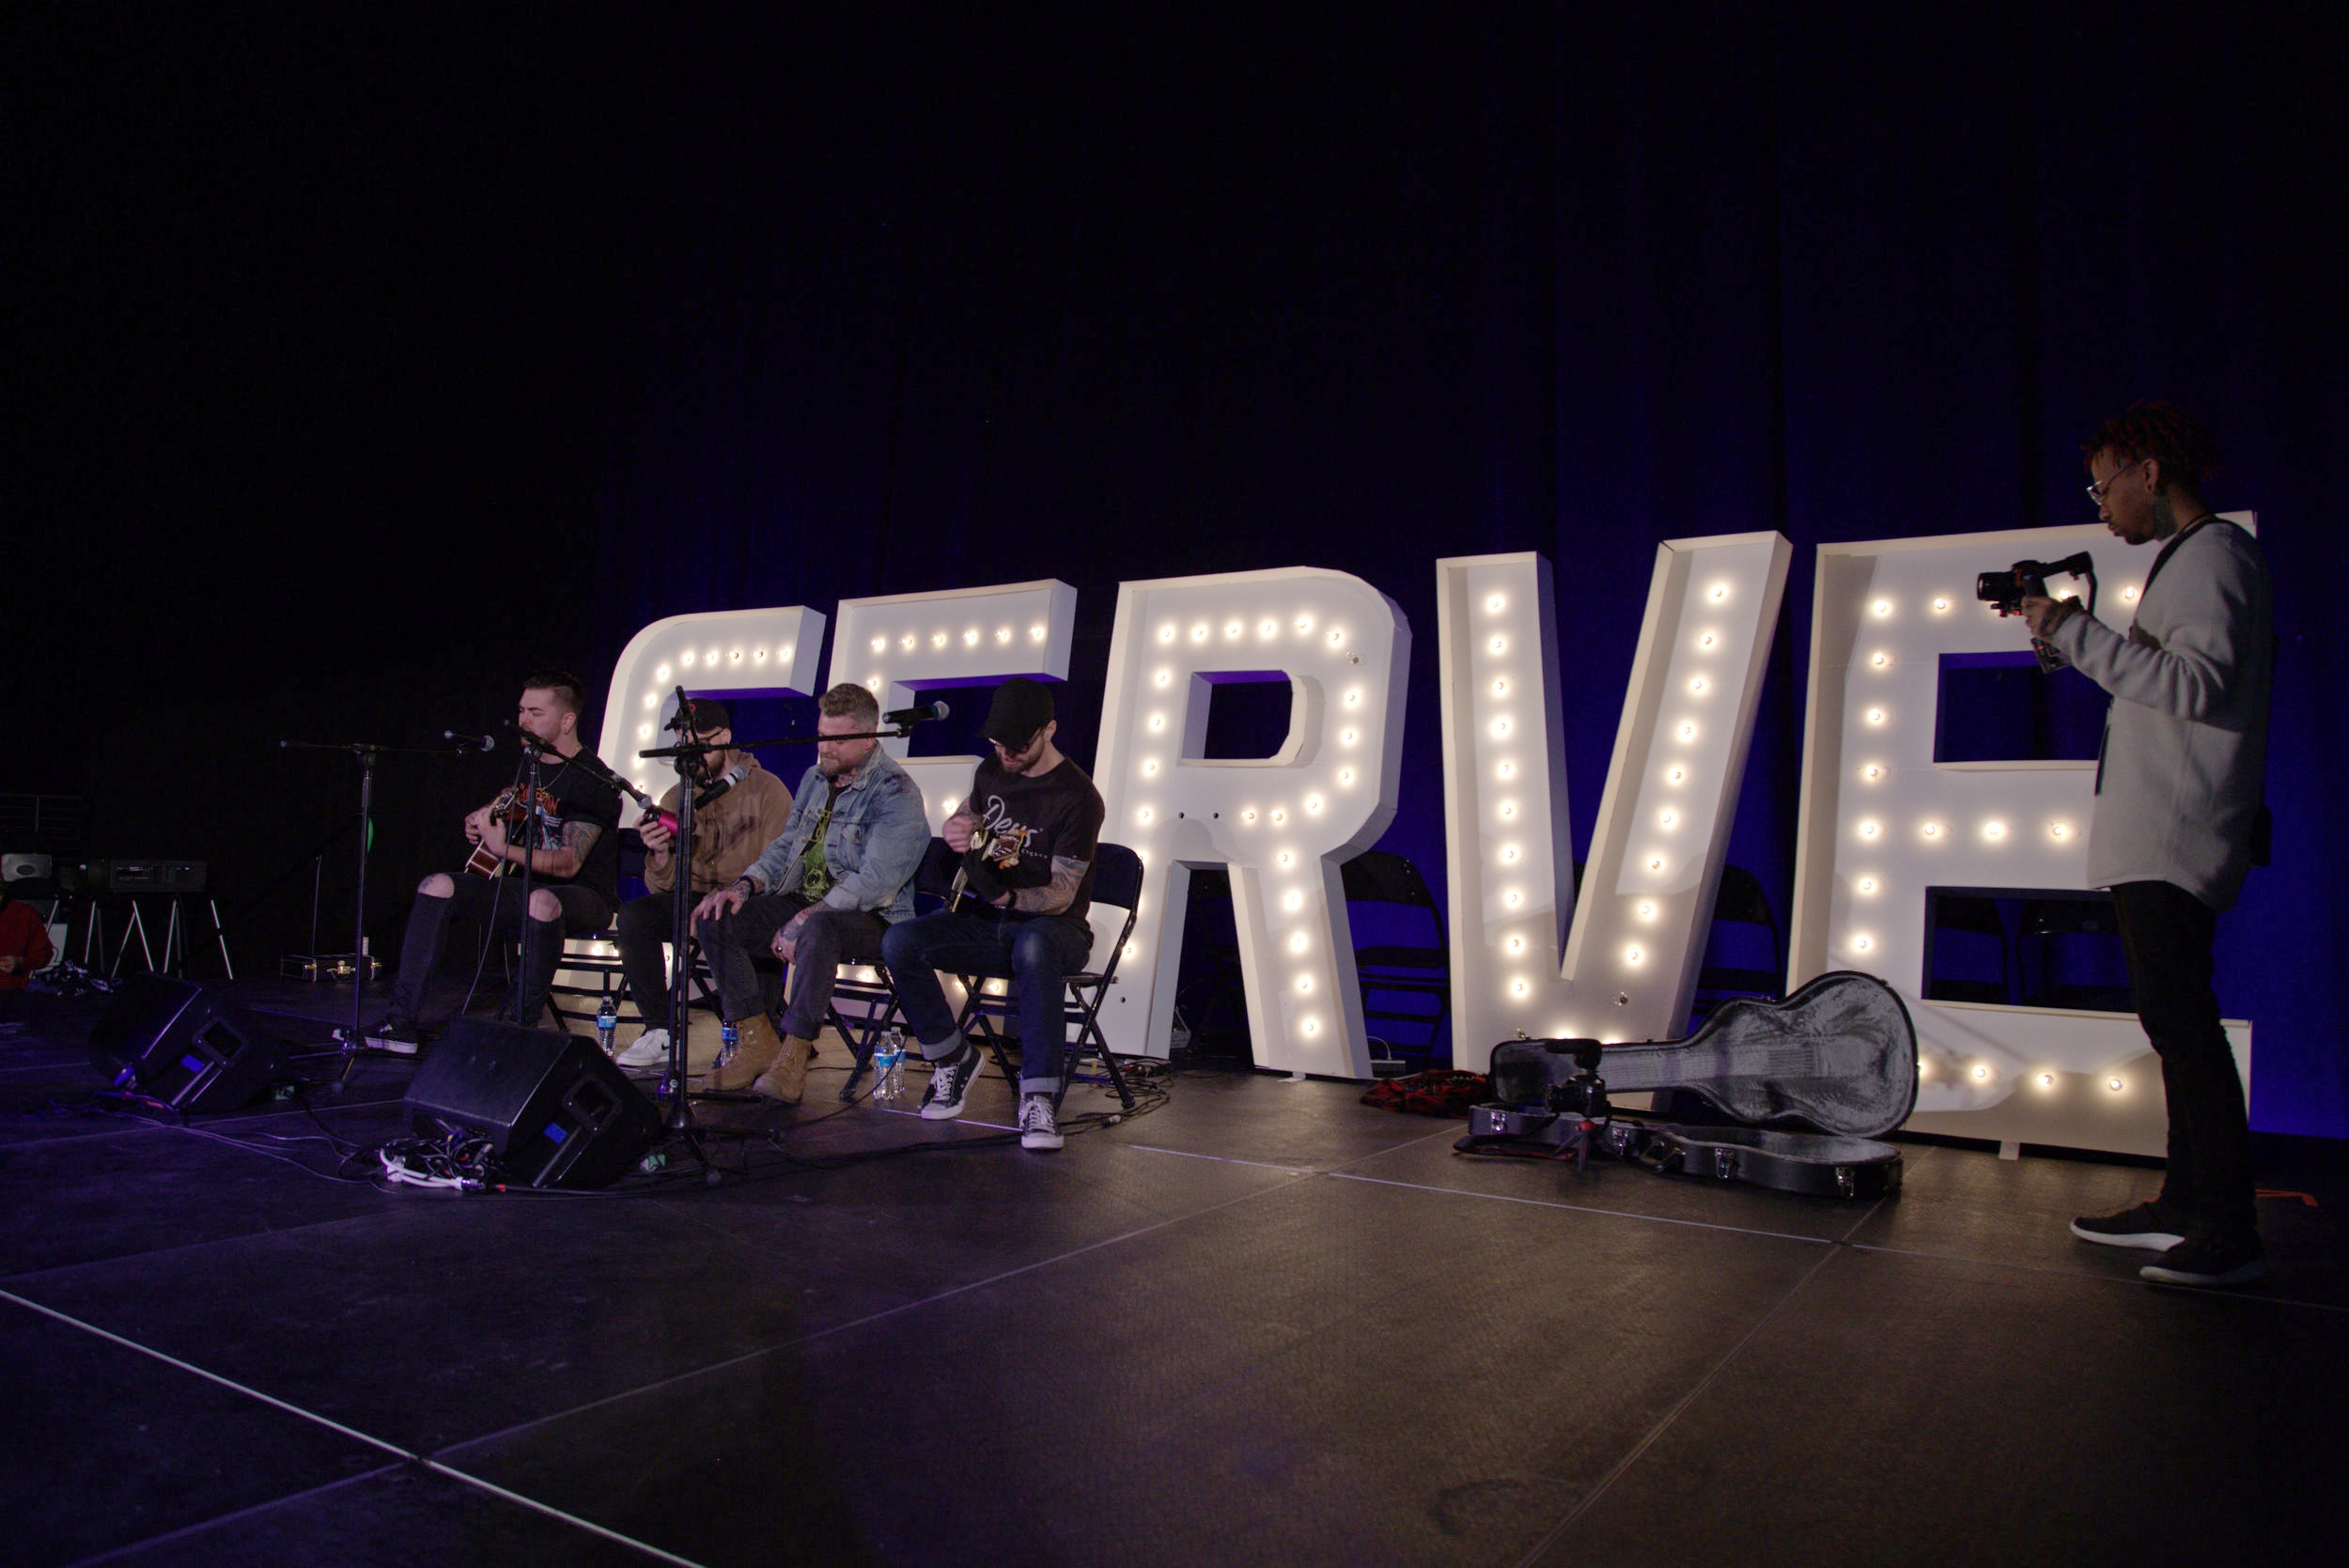 Davey Muise performing with his band Trove